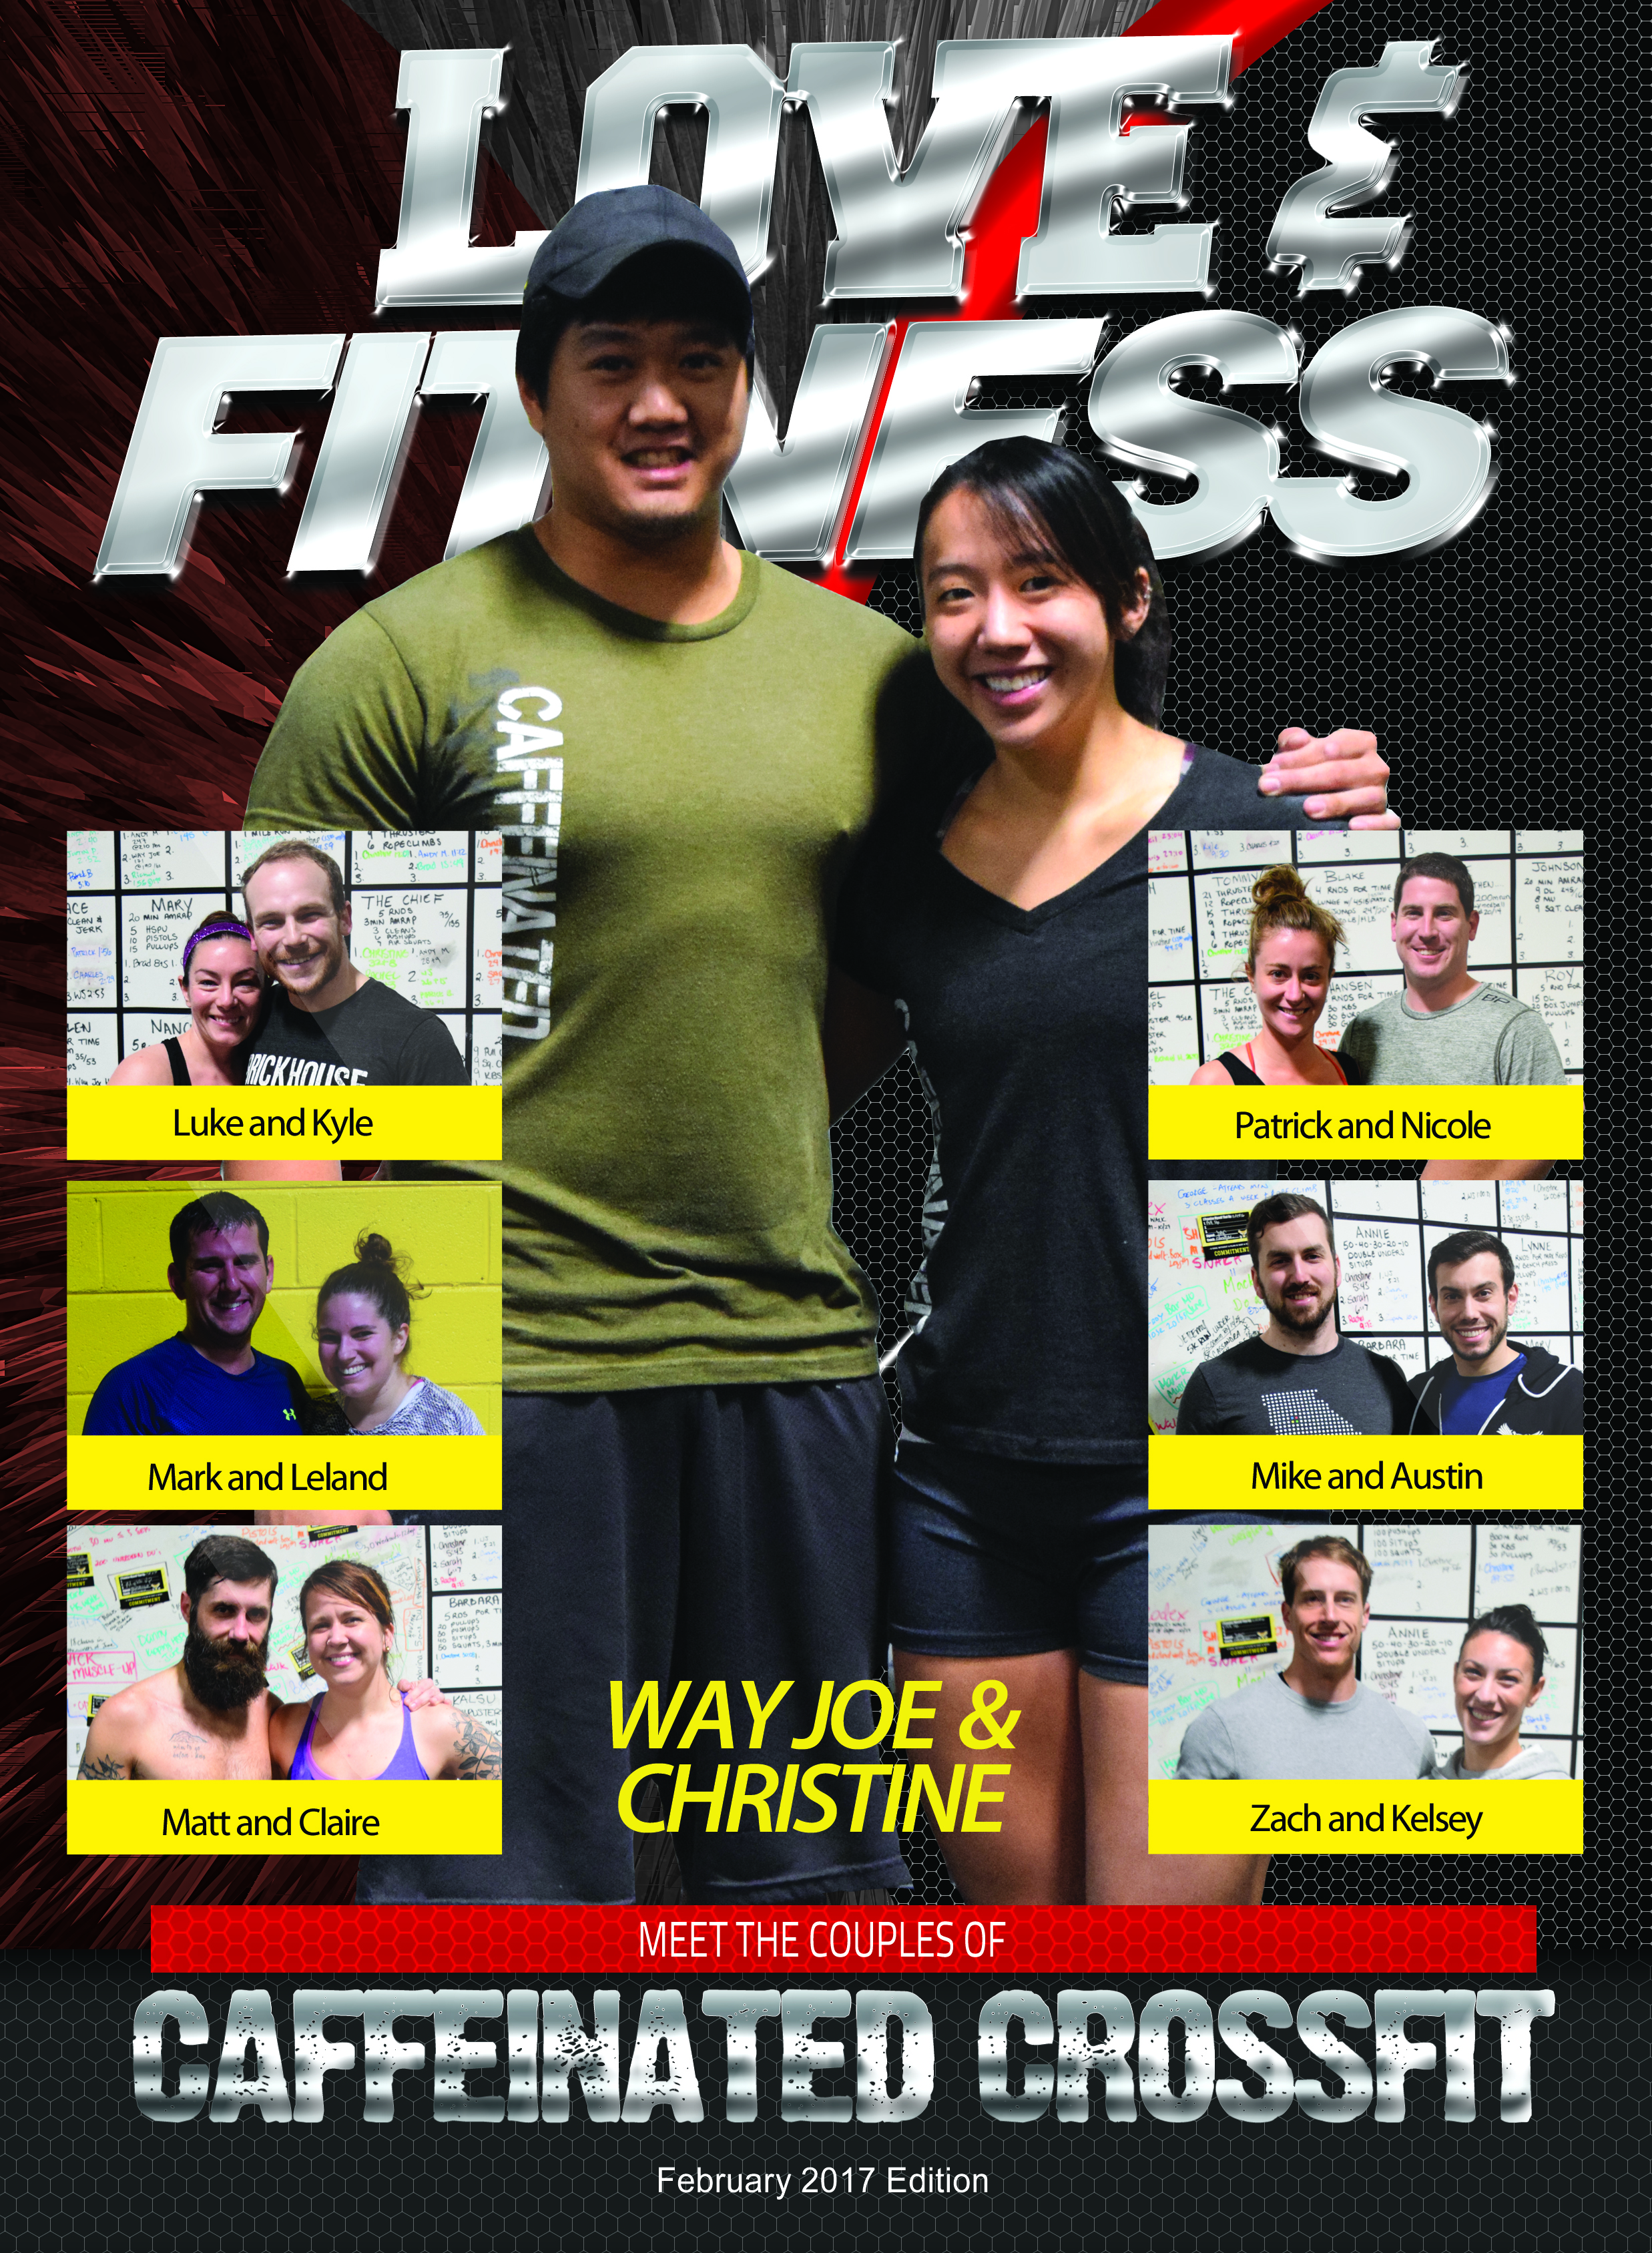 Couples of Caffeinated CrossFit